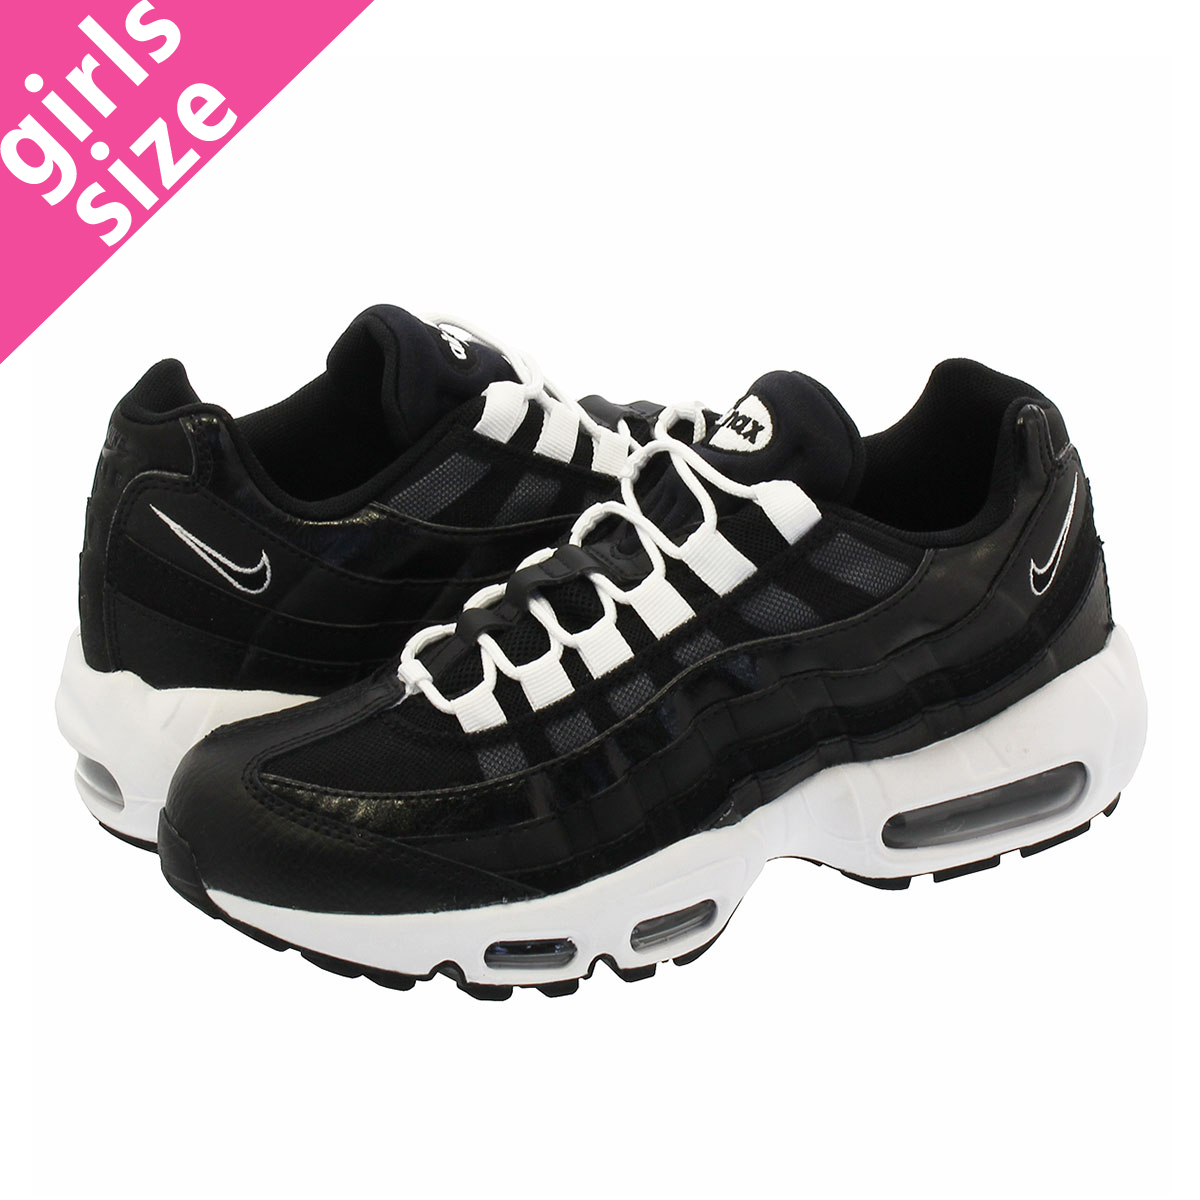 LOWTEX BIG-SMALL SHOP  NIKE WMNS AIR MAX 95 Nike women Air Max 95 ... 69b6fa7a6b